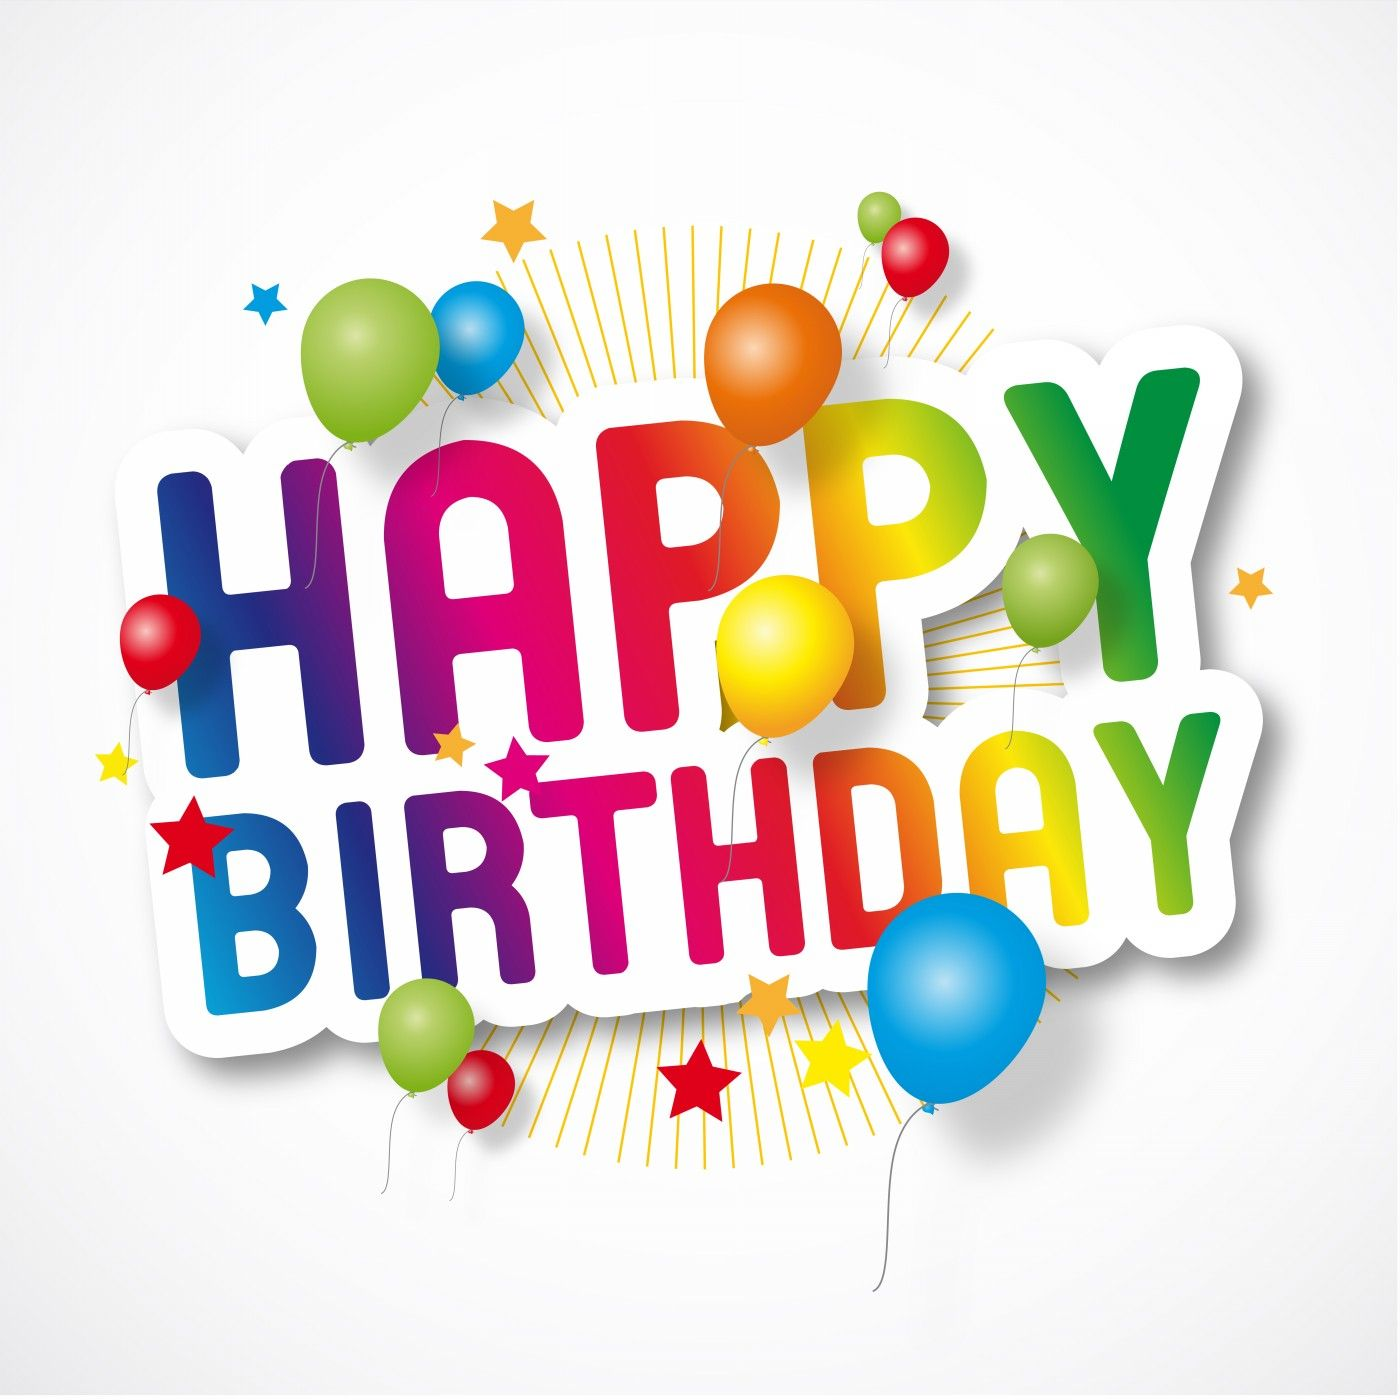 Happy Birthday to You Image Card 3 – Happy Birthday Video Card